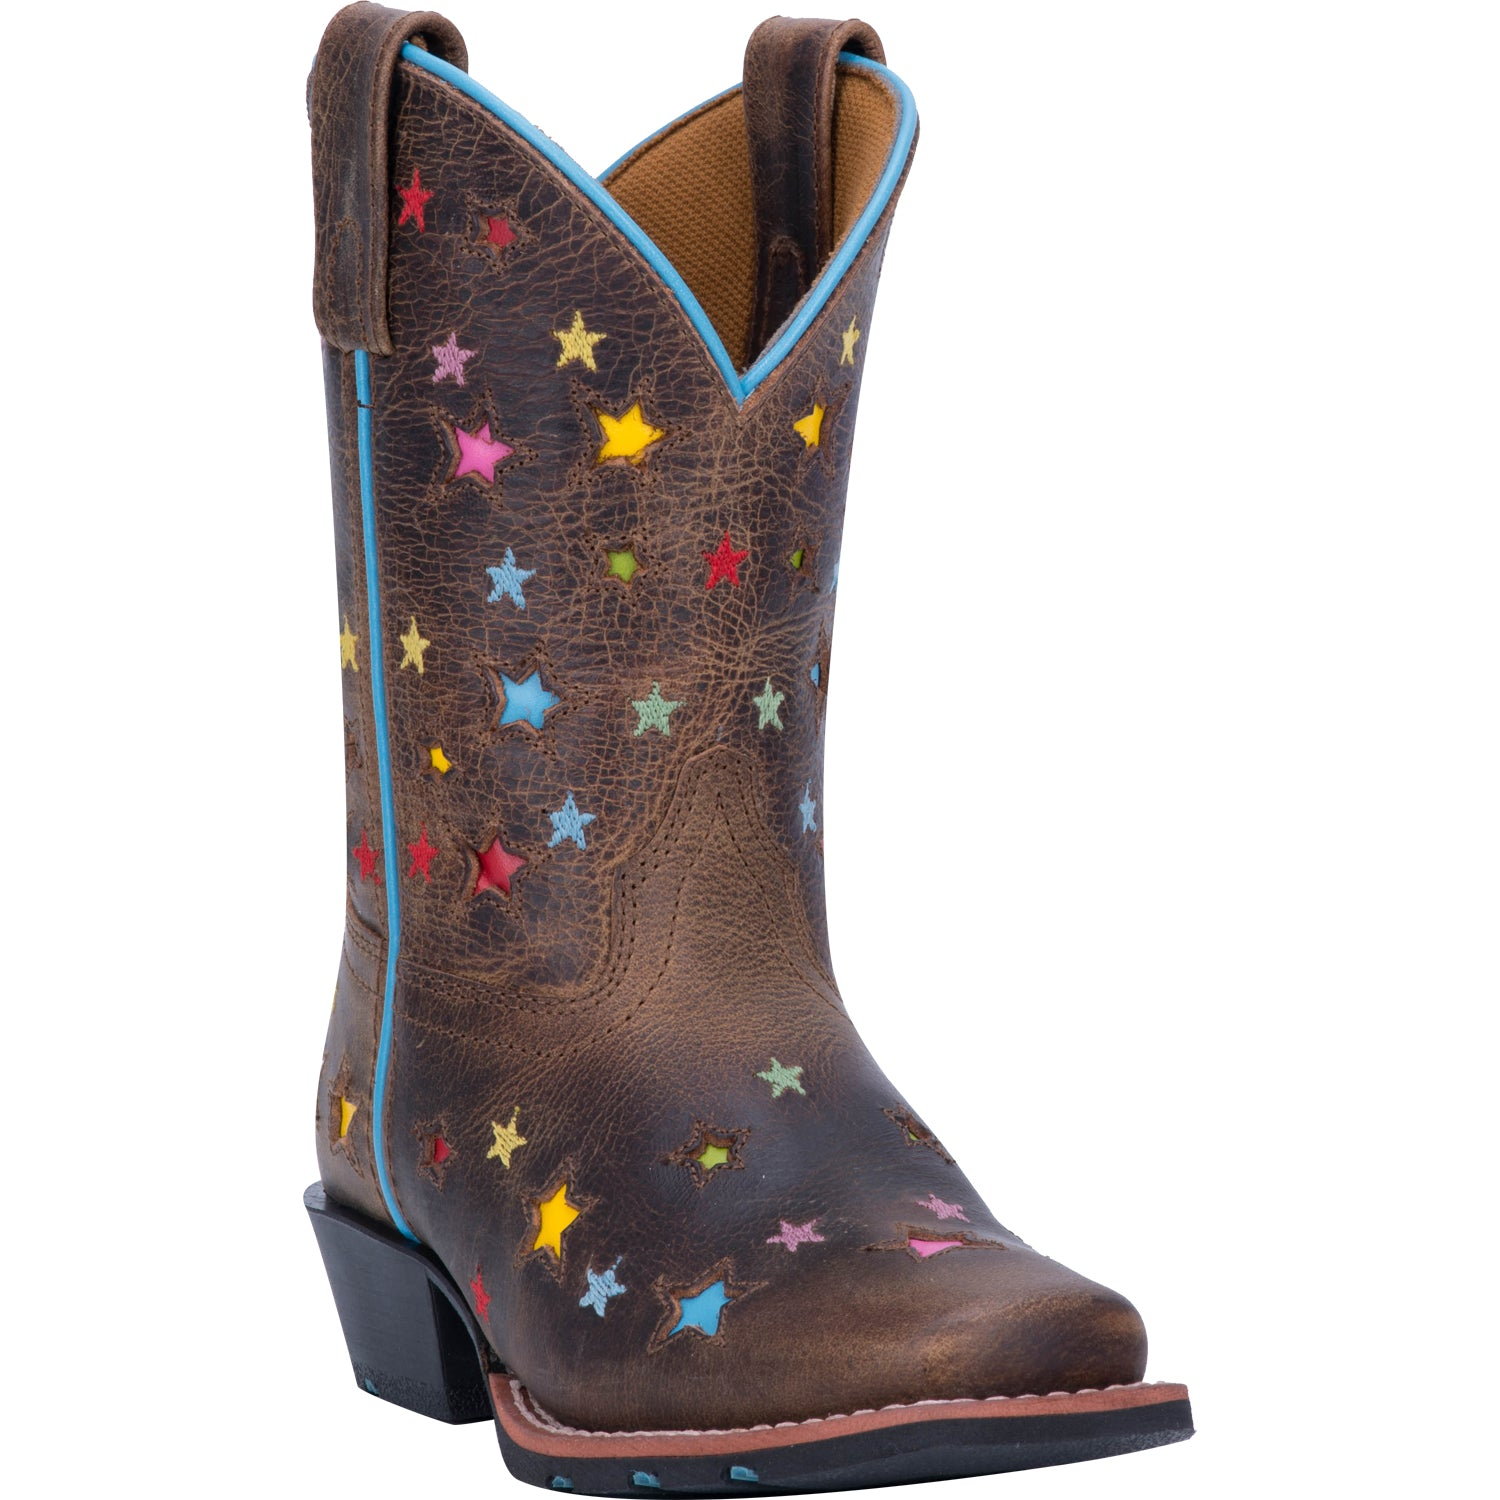 STARLETT LEATHER YOUTH BOOT 15521816739882